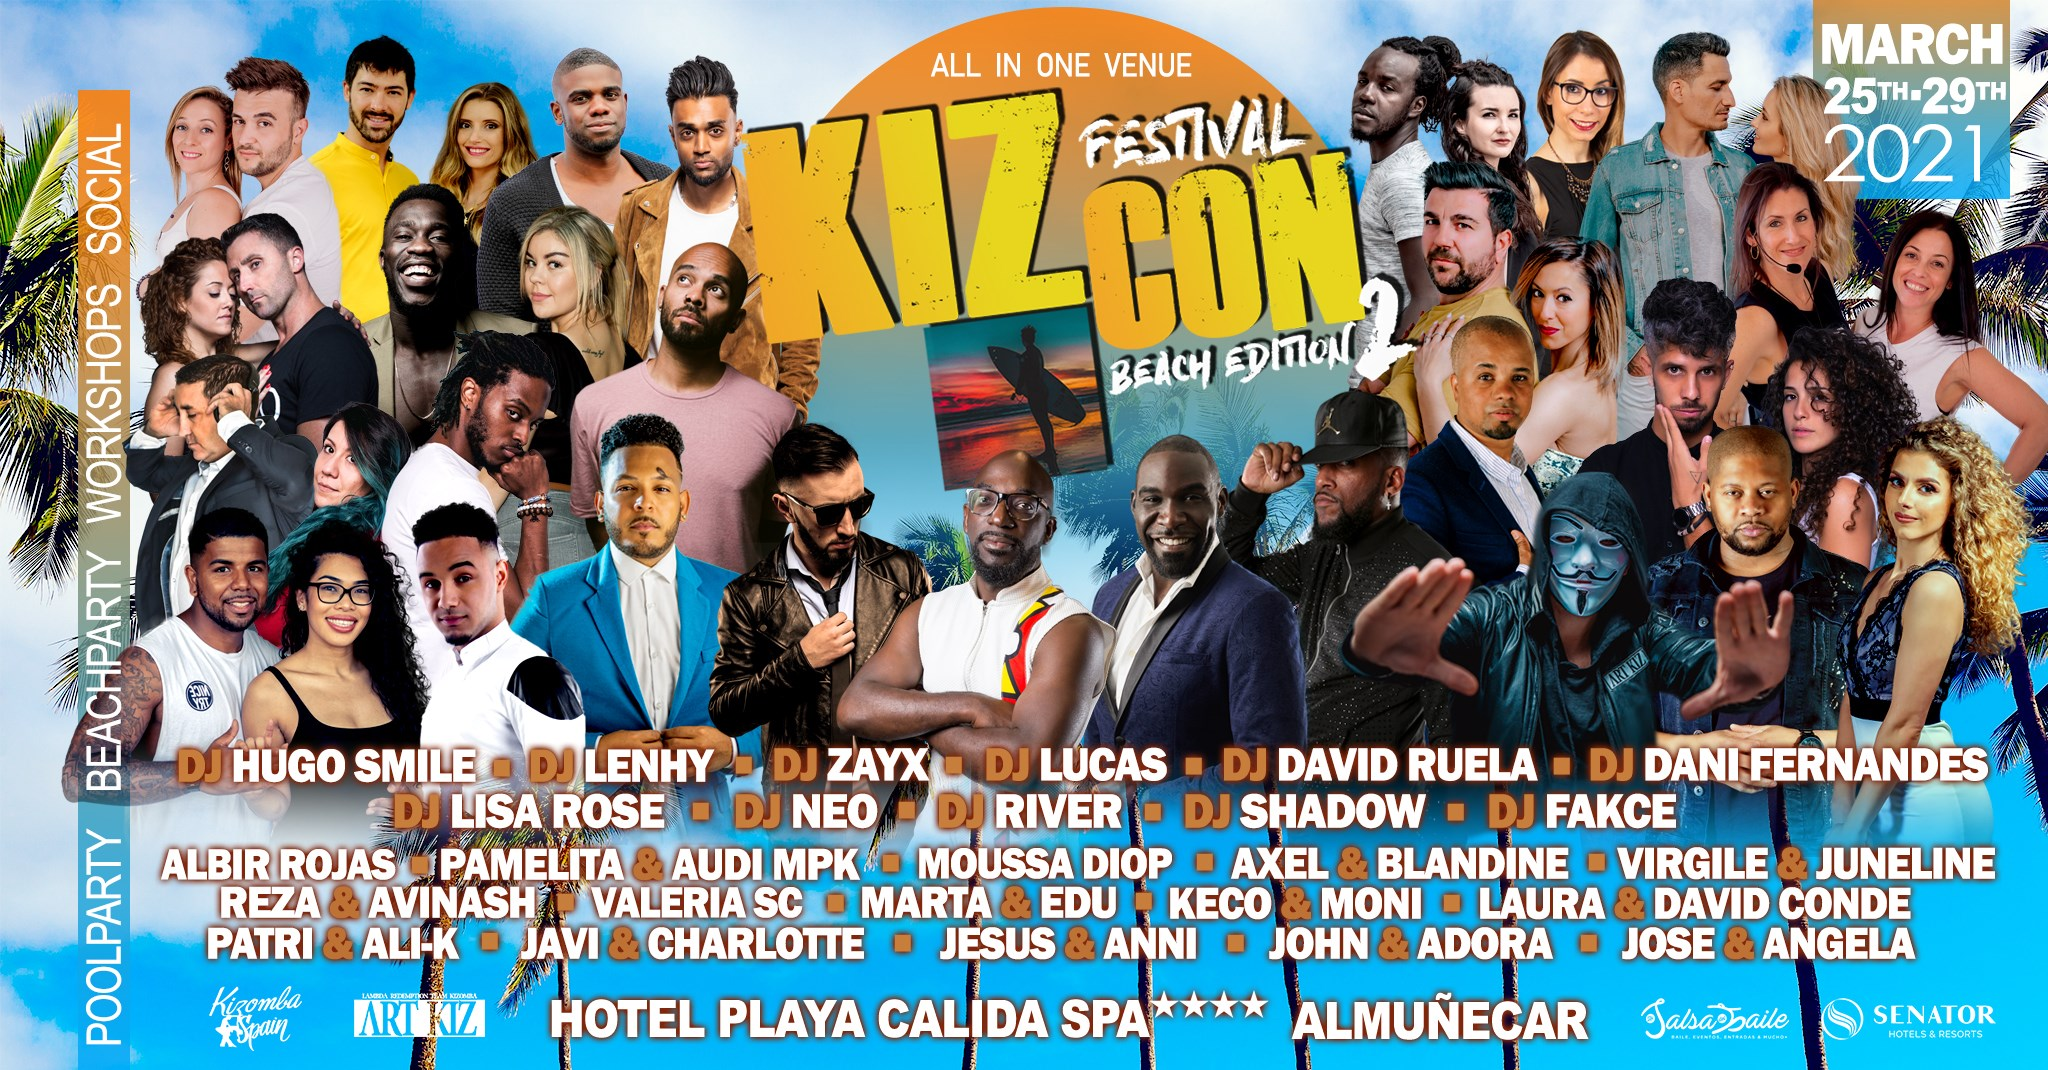 KIZCON 2021 - Beach Edition 2 Kizomba Festival (Official Event)